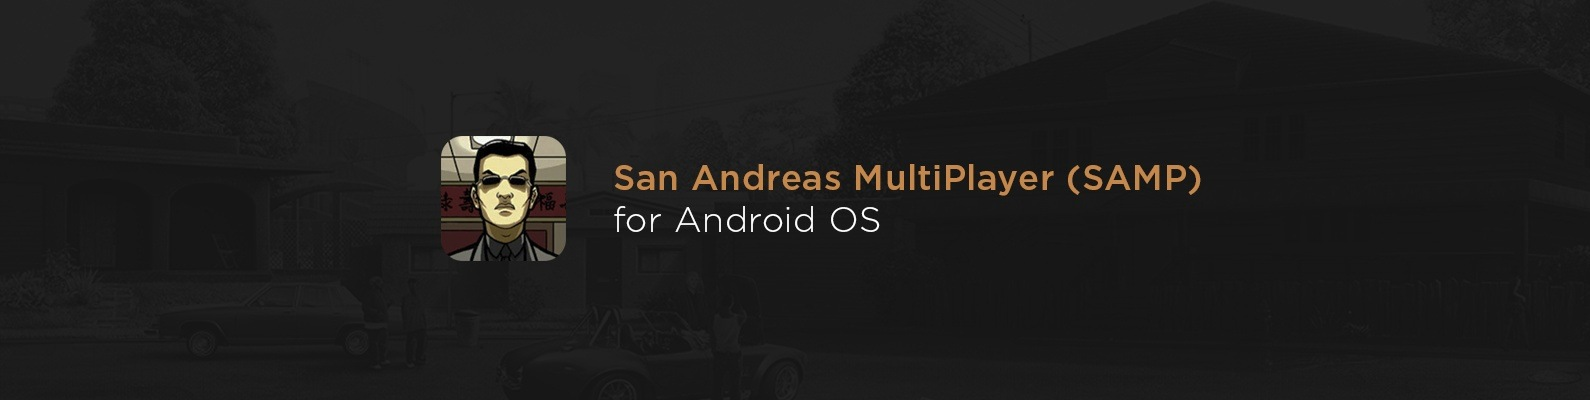 San Andreas MultiPlayer (SAMP) for Android OS | ВКонтакте